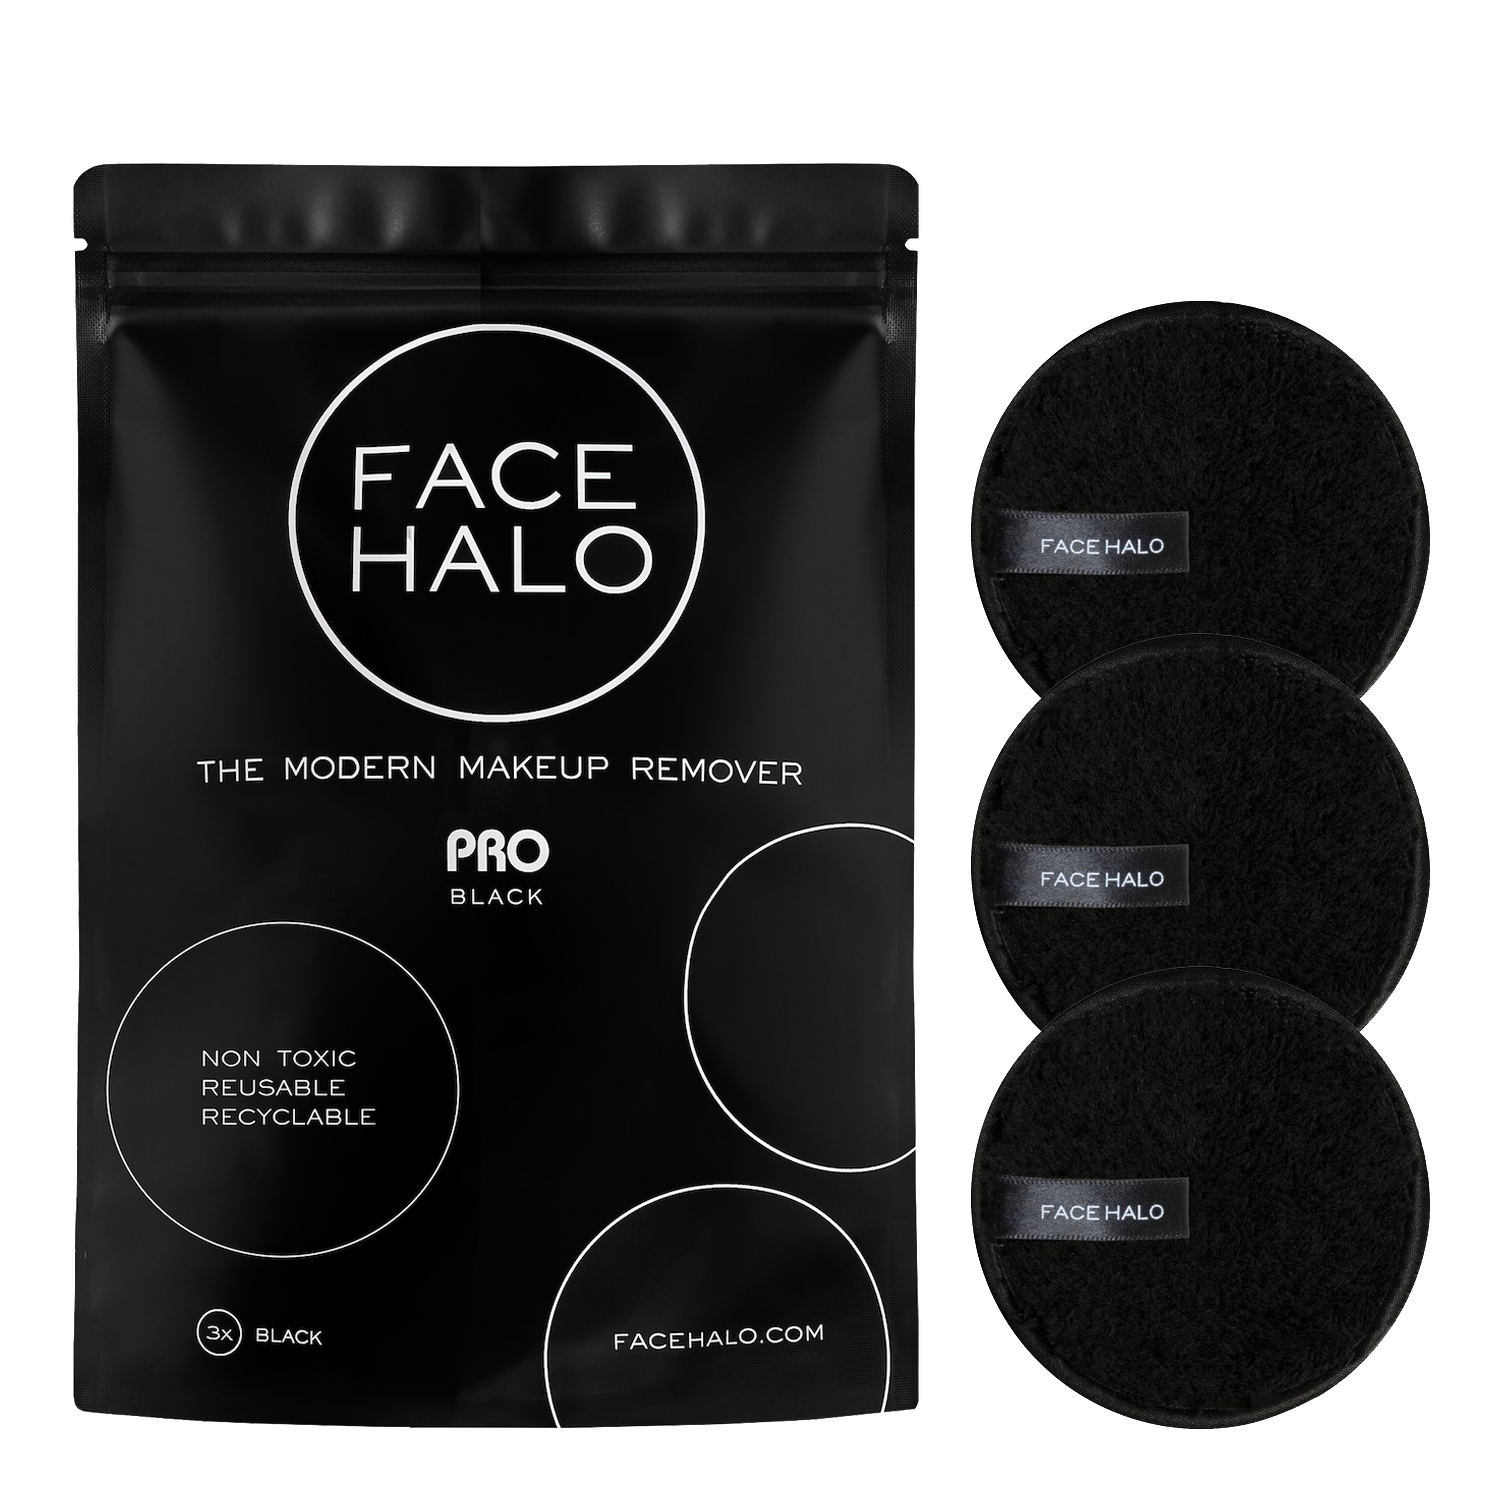 PRO Pack of 3 Makeup remover, Makeup remover pads